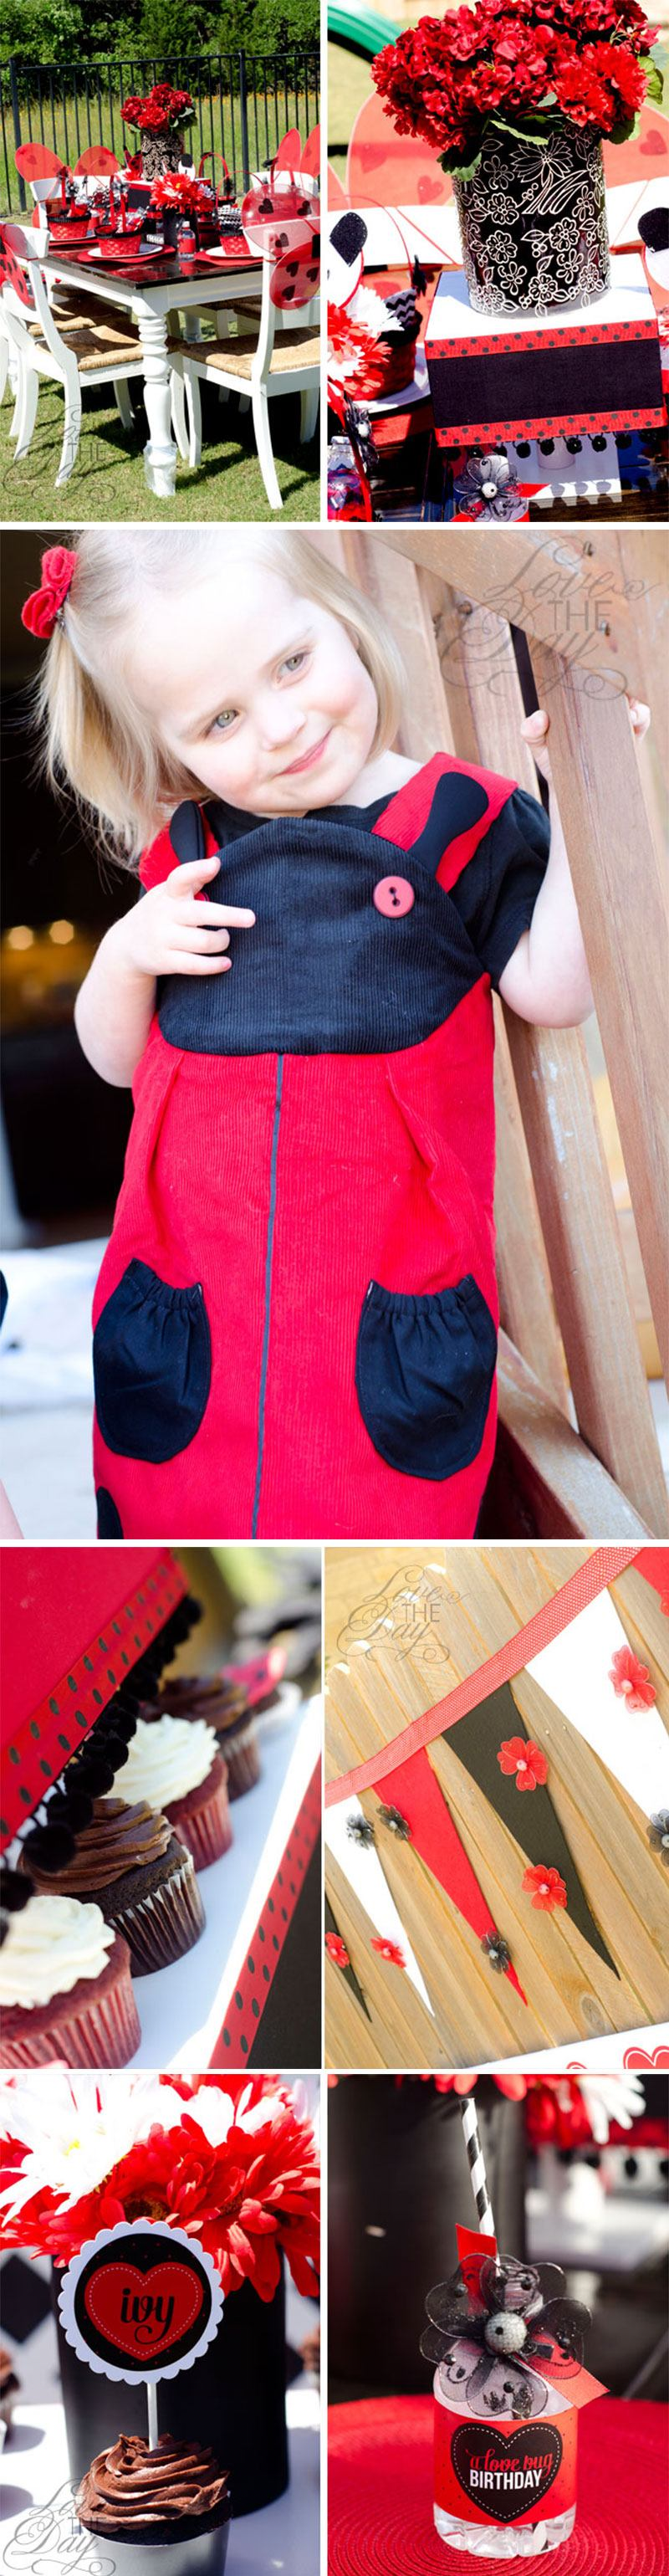 Ladybug Party Ideas by Lindi Haws of Love The Day